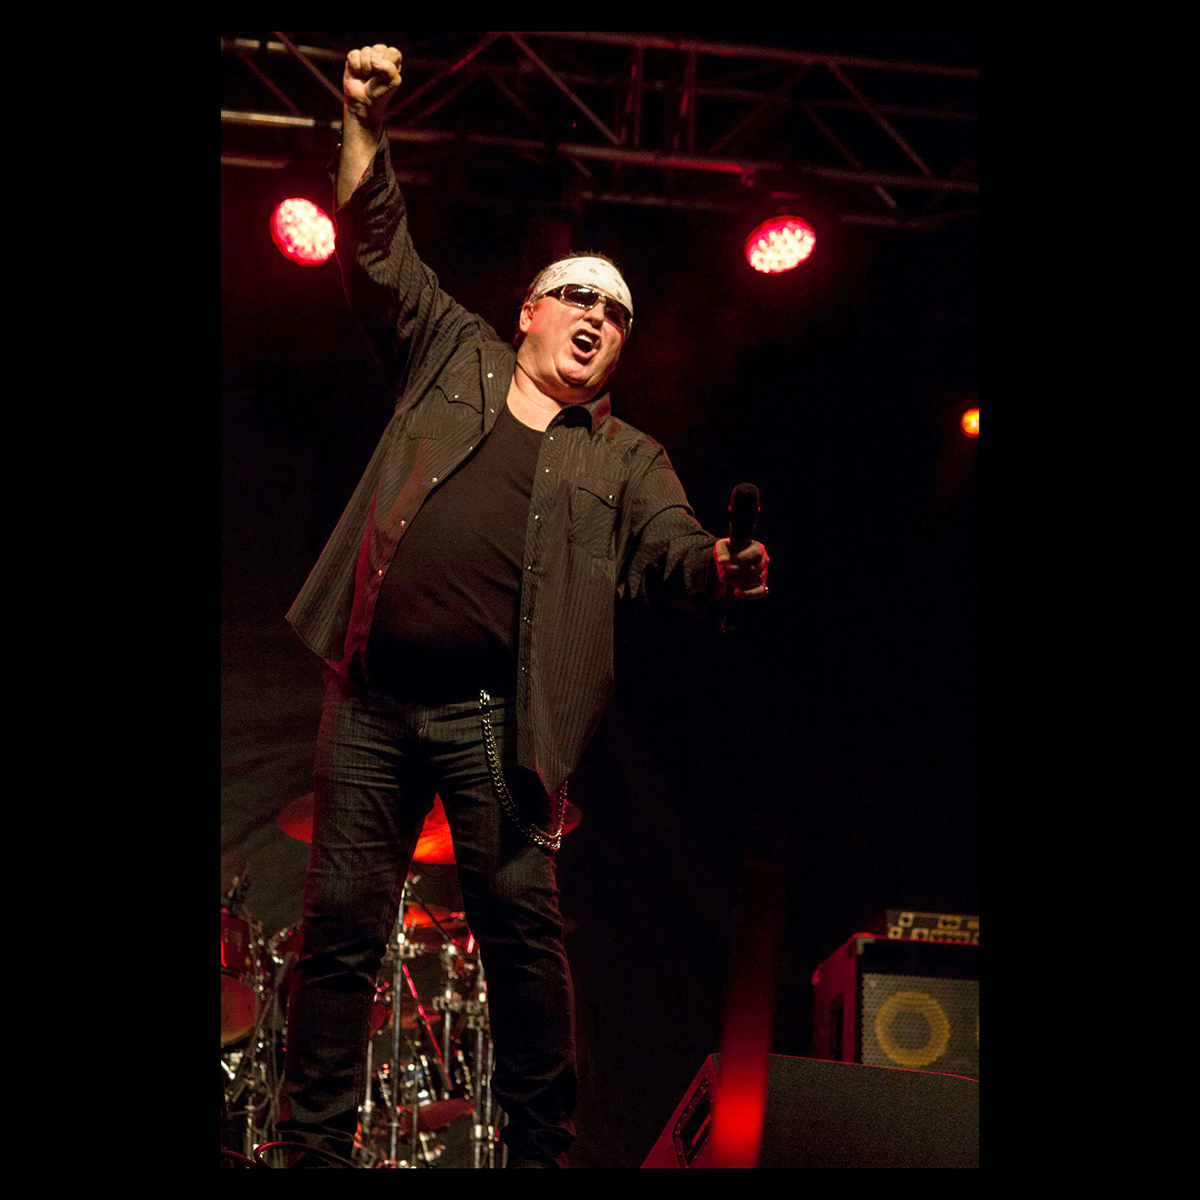 Loverboy Celebrates the 40th Anniversary of their Debut Album